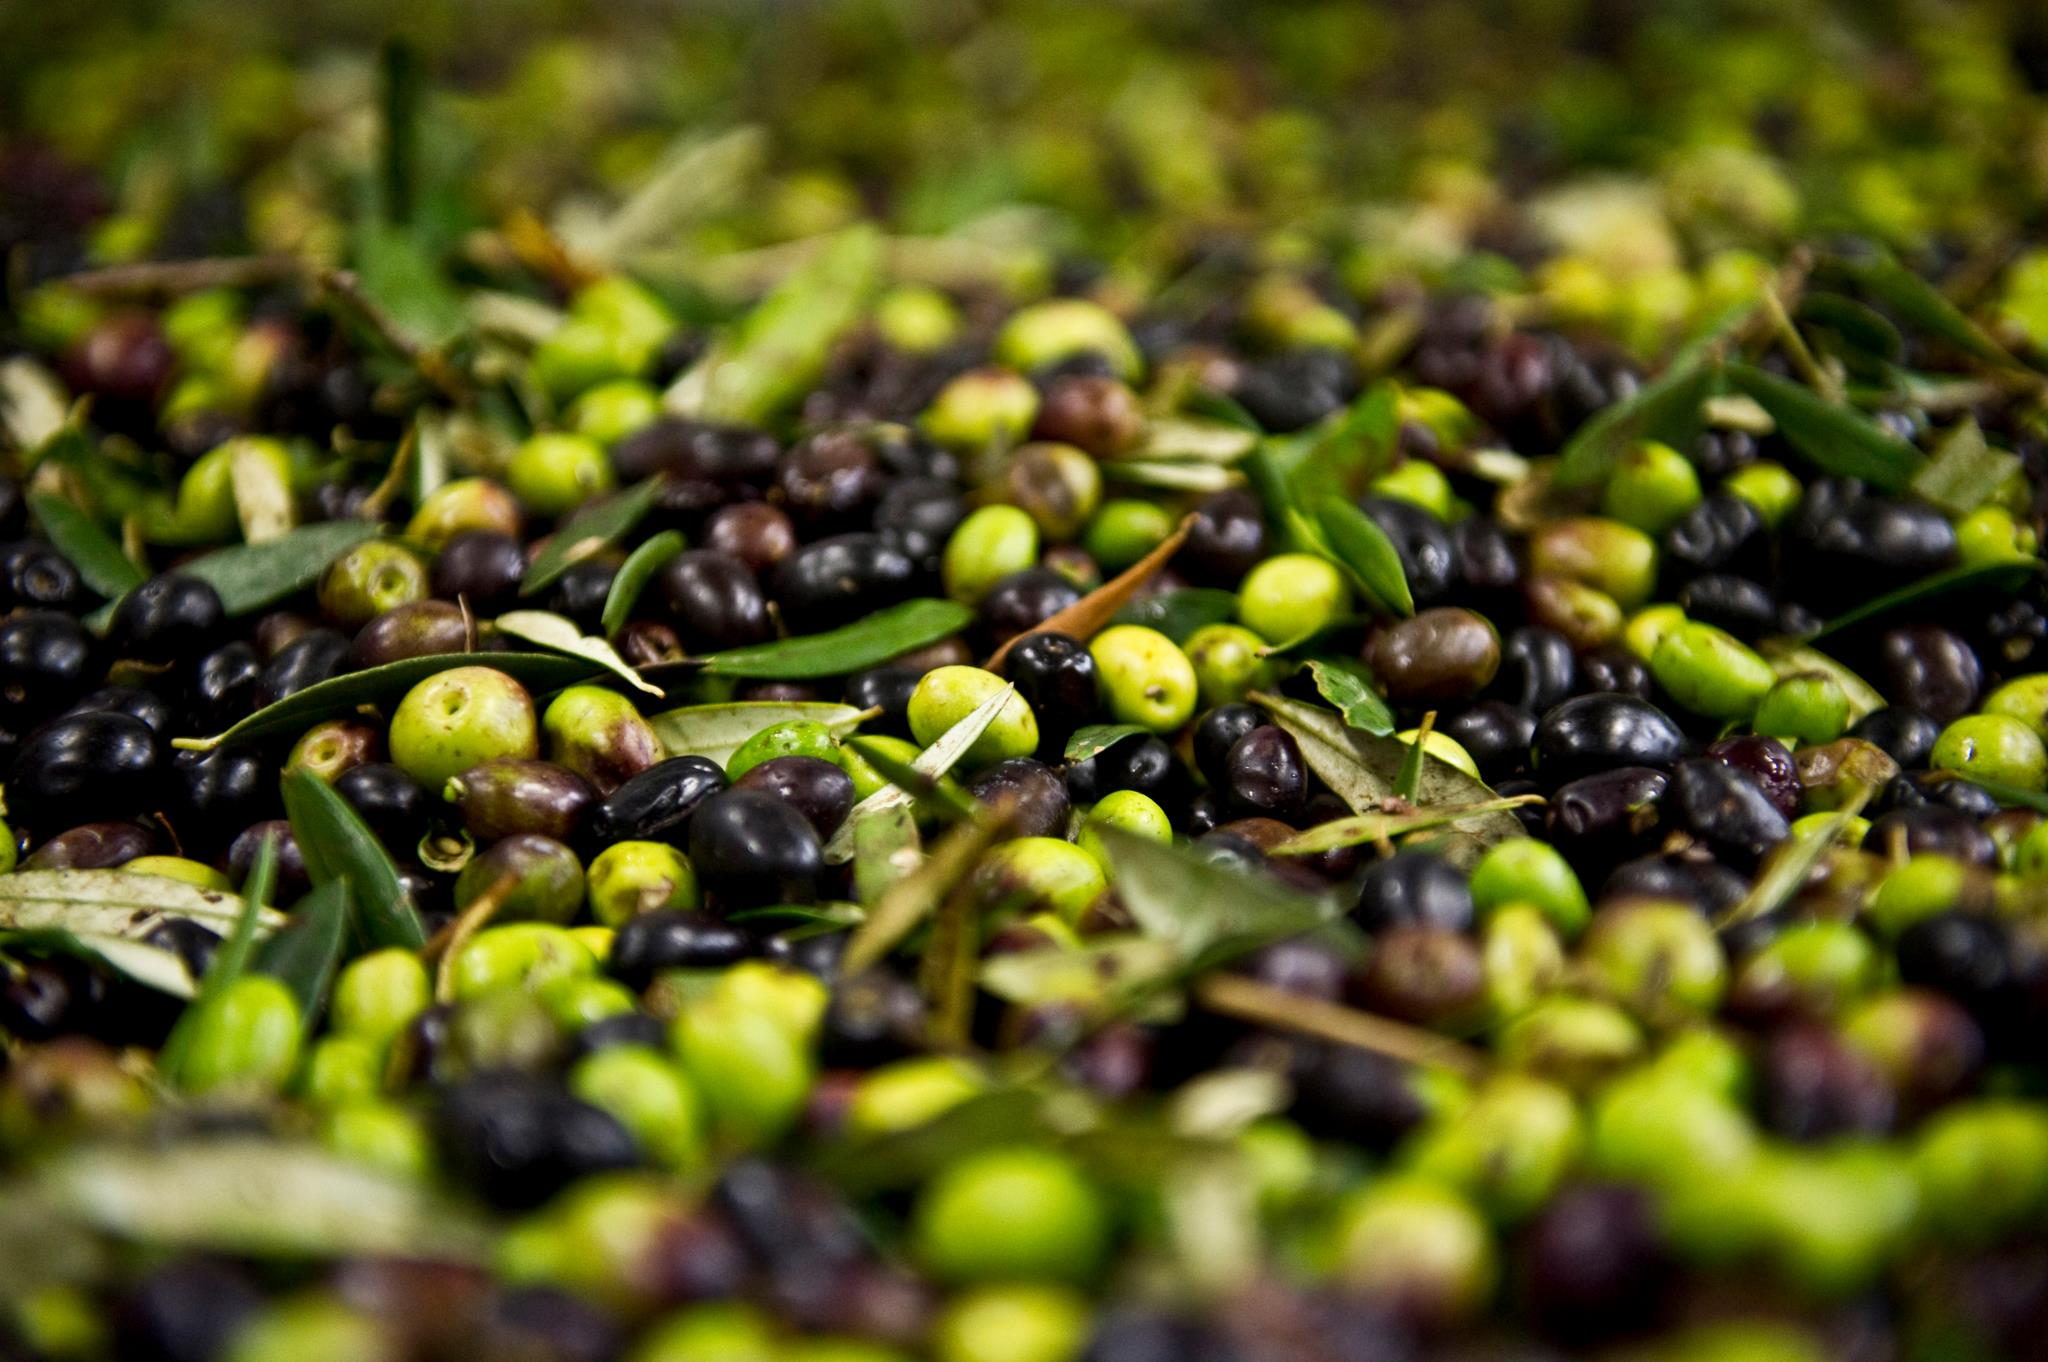 Olive HD wallpapers, Desktop wallpaper - most viewed